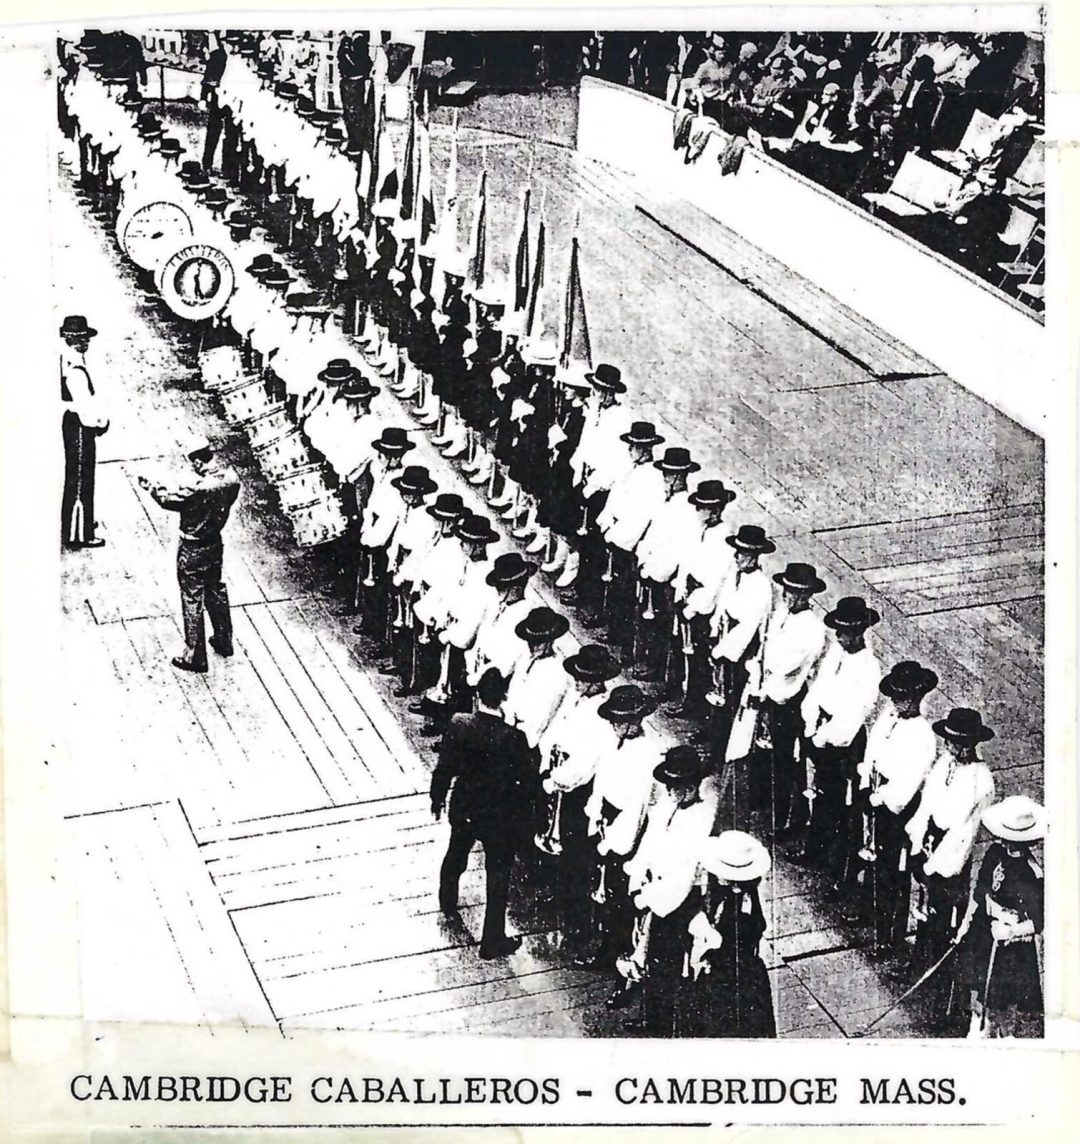 Cambridge Caballeros on the Inspection Line